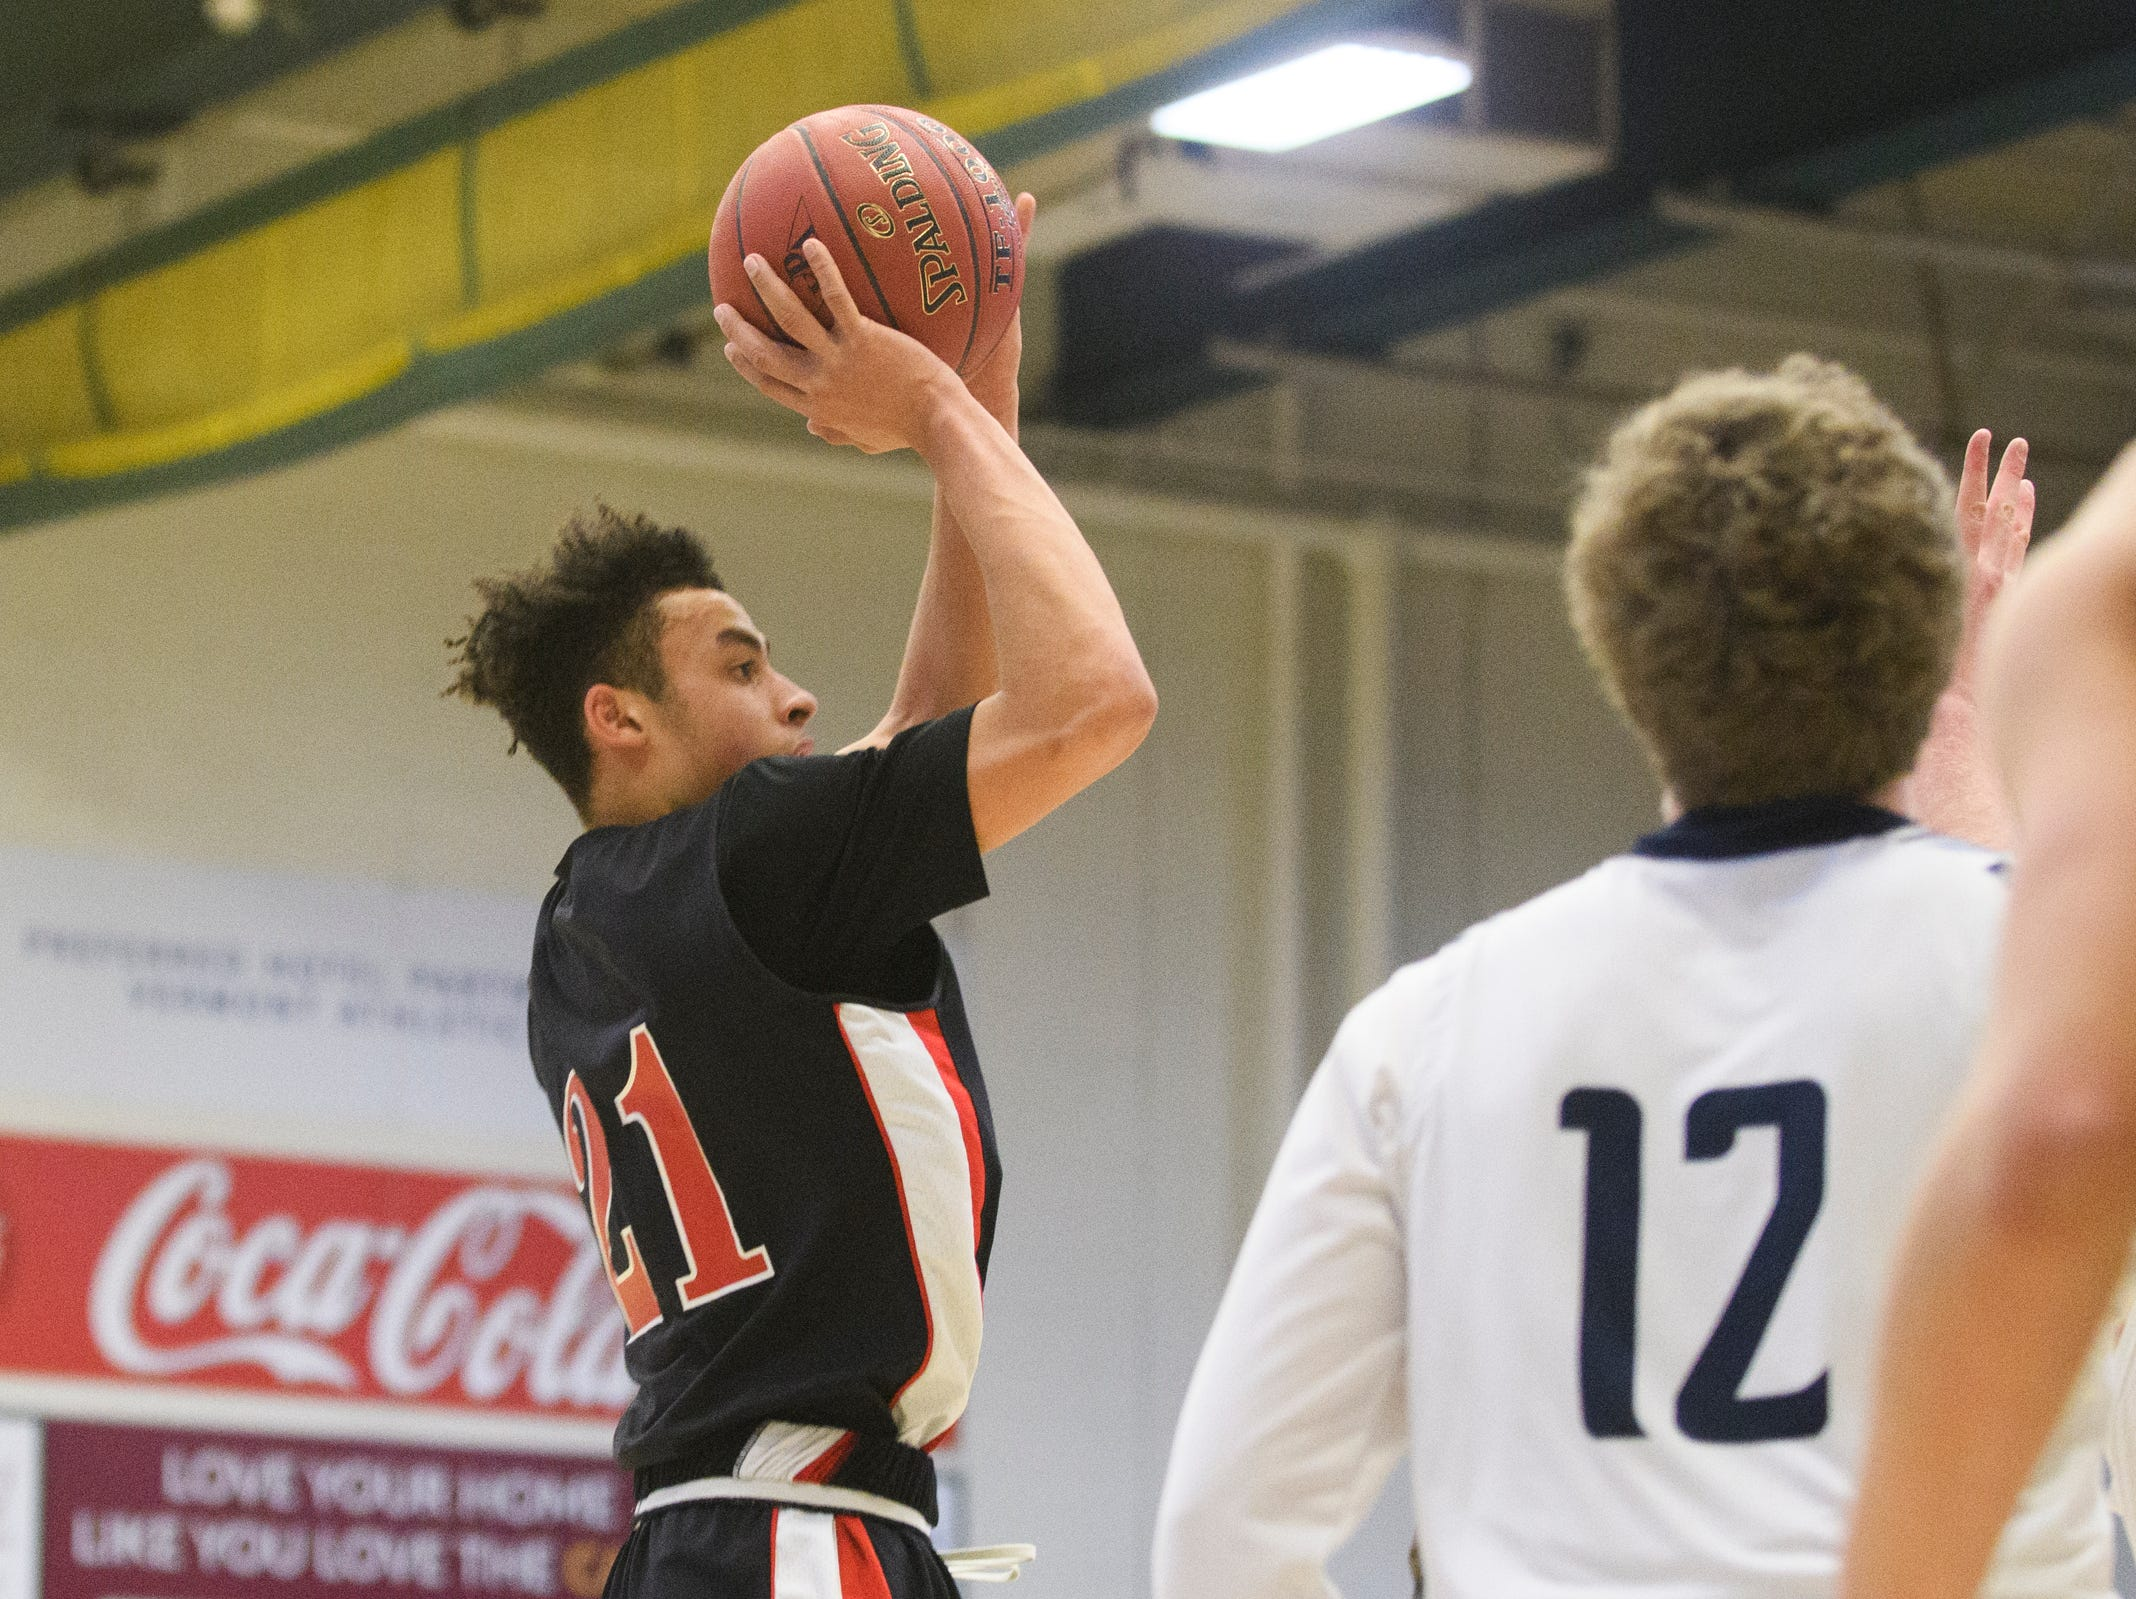 Rutland's Jamison Evans (21) shoots the ball during the boys DI semi final basketball game between the Rutland Raiders and the Mount Mansfield Cougars at Patrick Gym on Monday night March 11, 2019 in Burlington, Vermont.